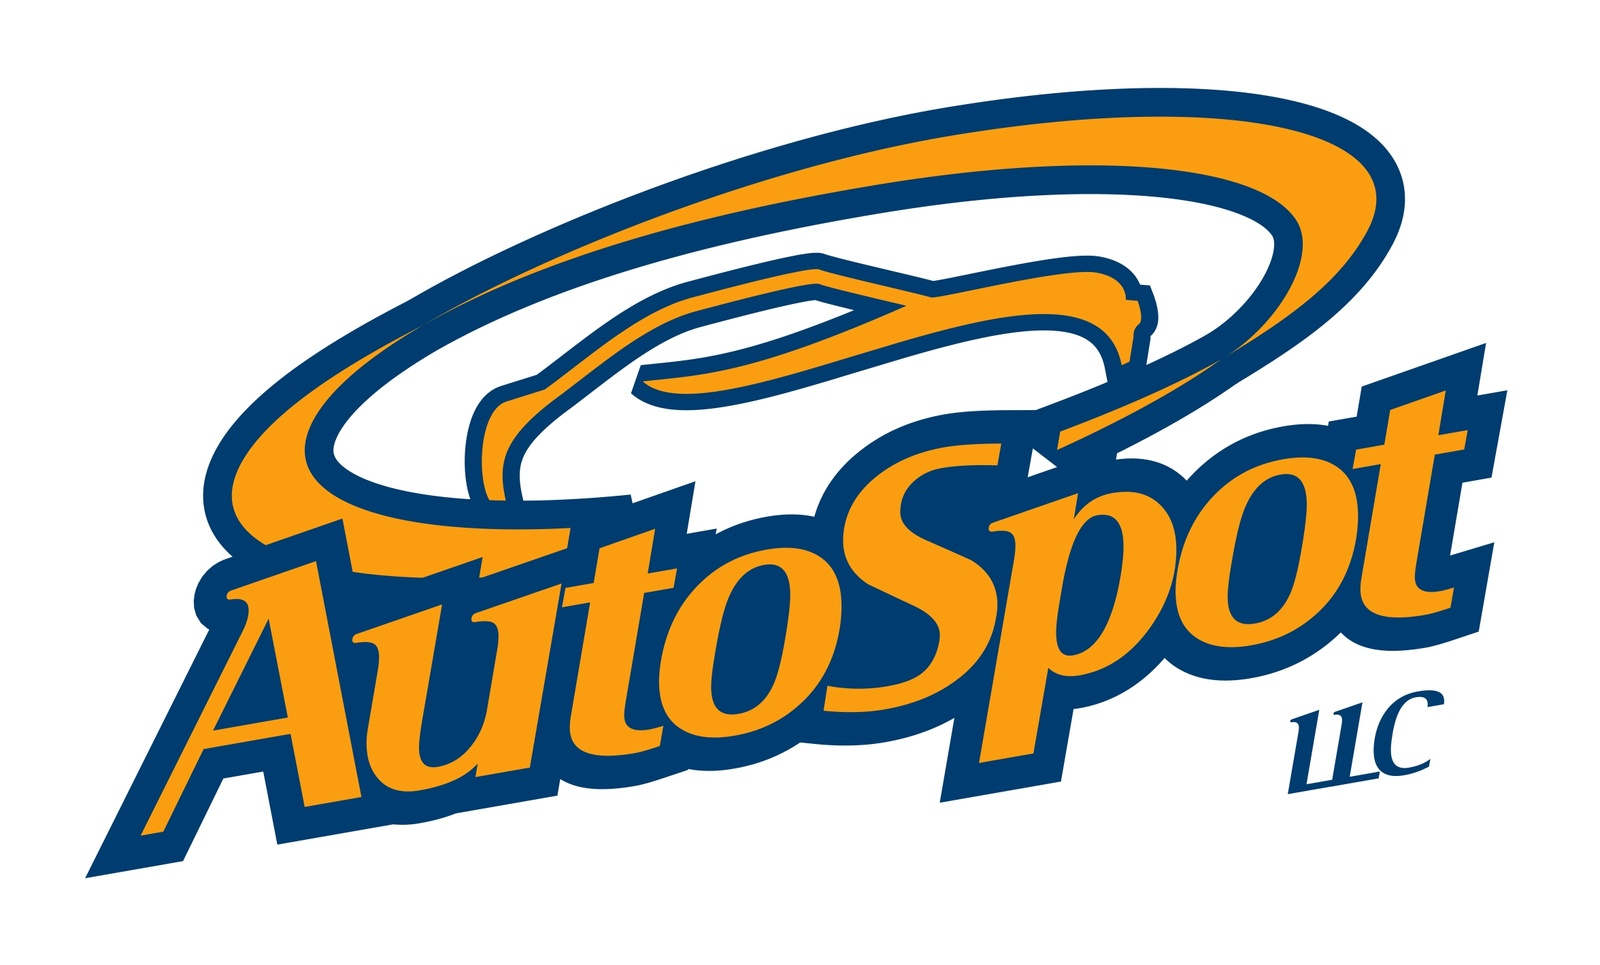 Auto Spot Llc Hasbrouck Heights Nj Read Consumer Reviews Browse Used And New Cars For Sale